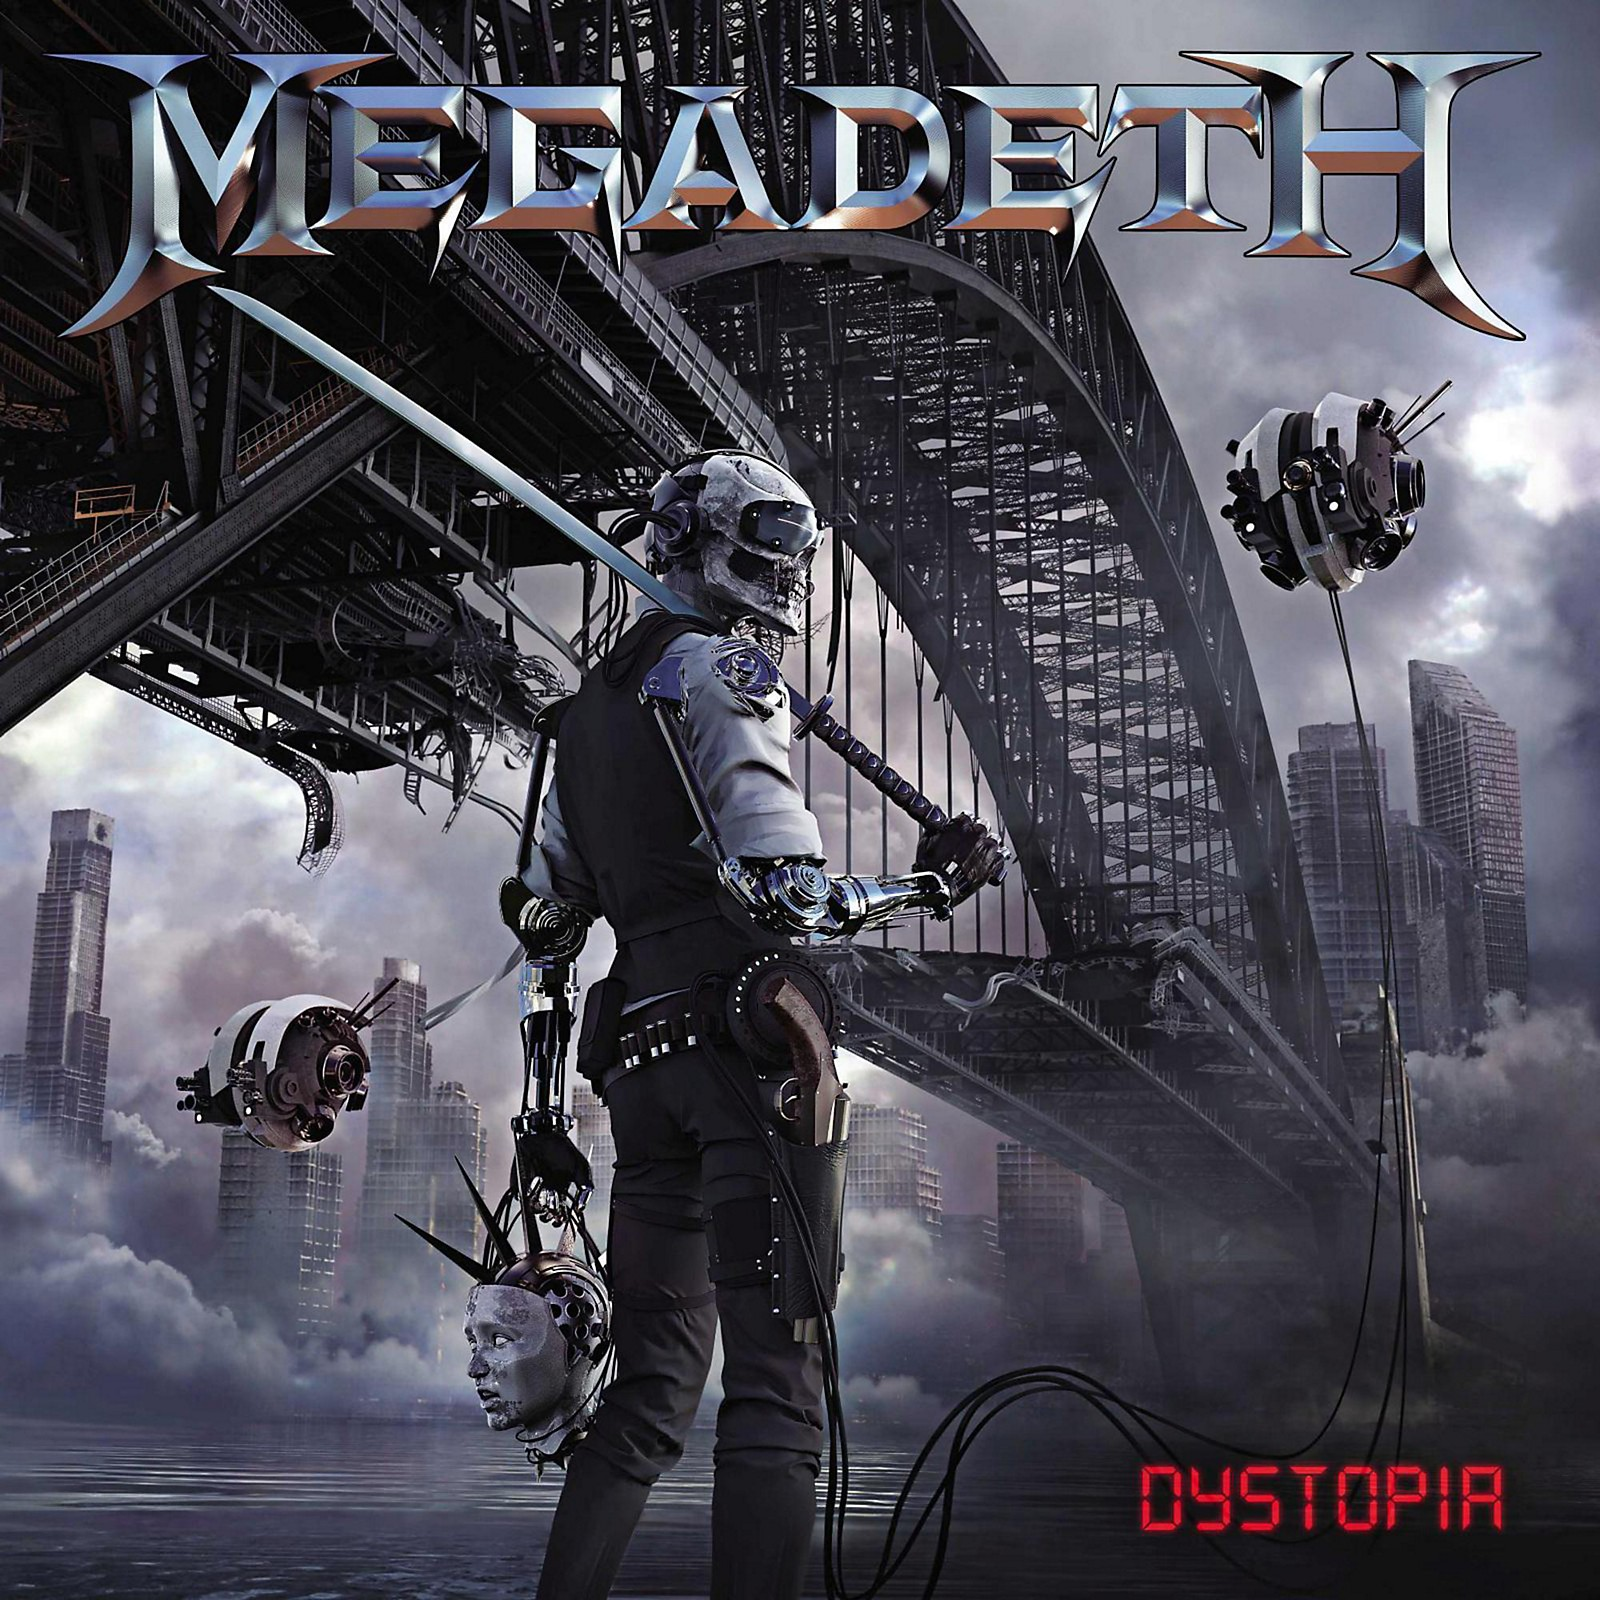 Universal Music Group Megadeth, Dystopia (LP)